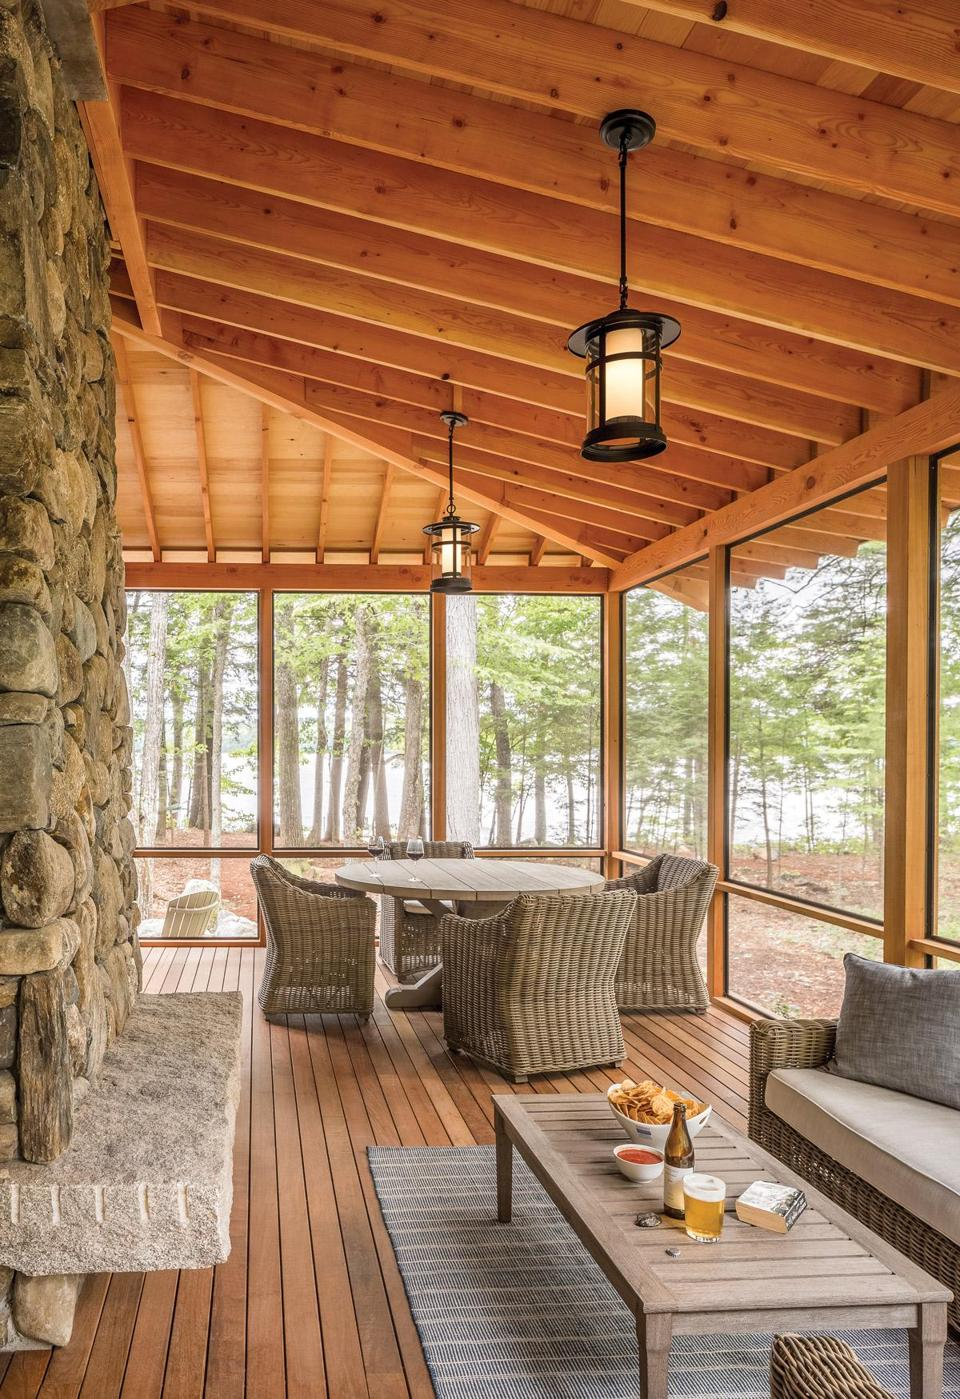 The hand-split granite ledge encircling the chimney supplements the seating on the screened porch. Black lantern-style pendant lights add to the cabin feel.